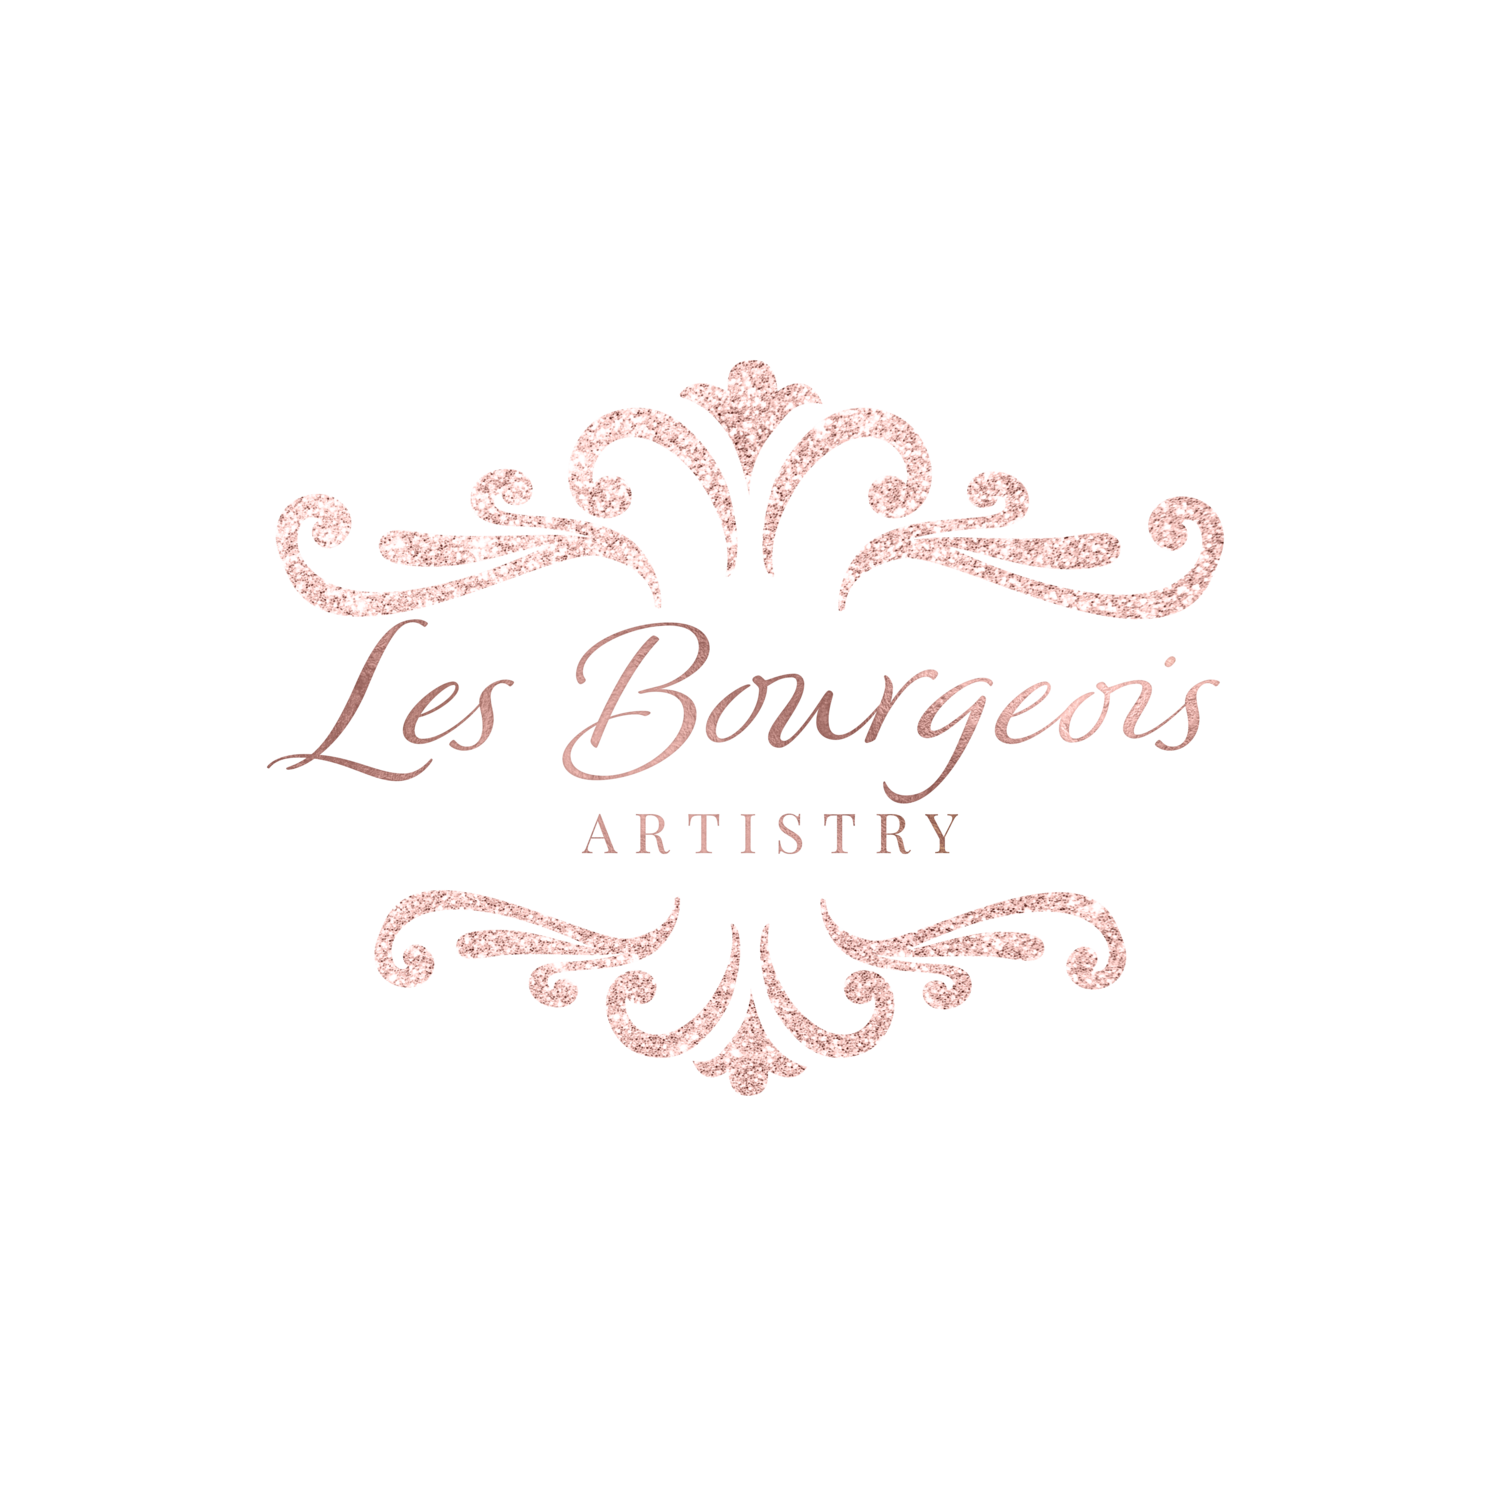 Les Bourgeois Artistry